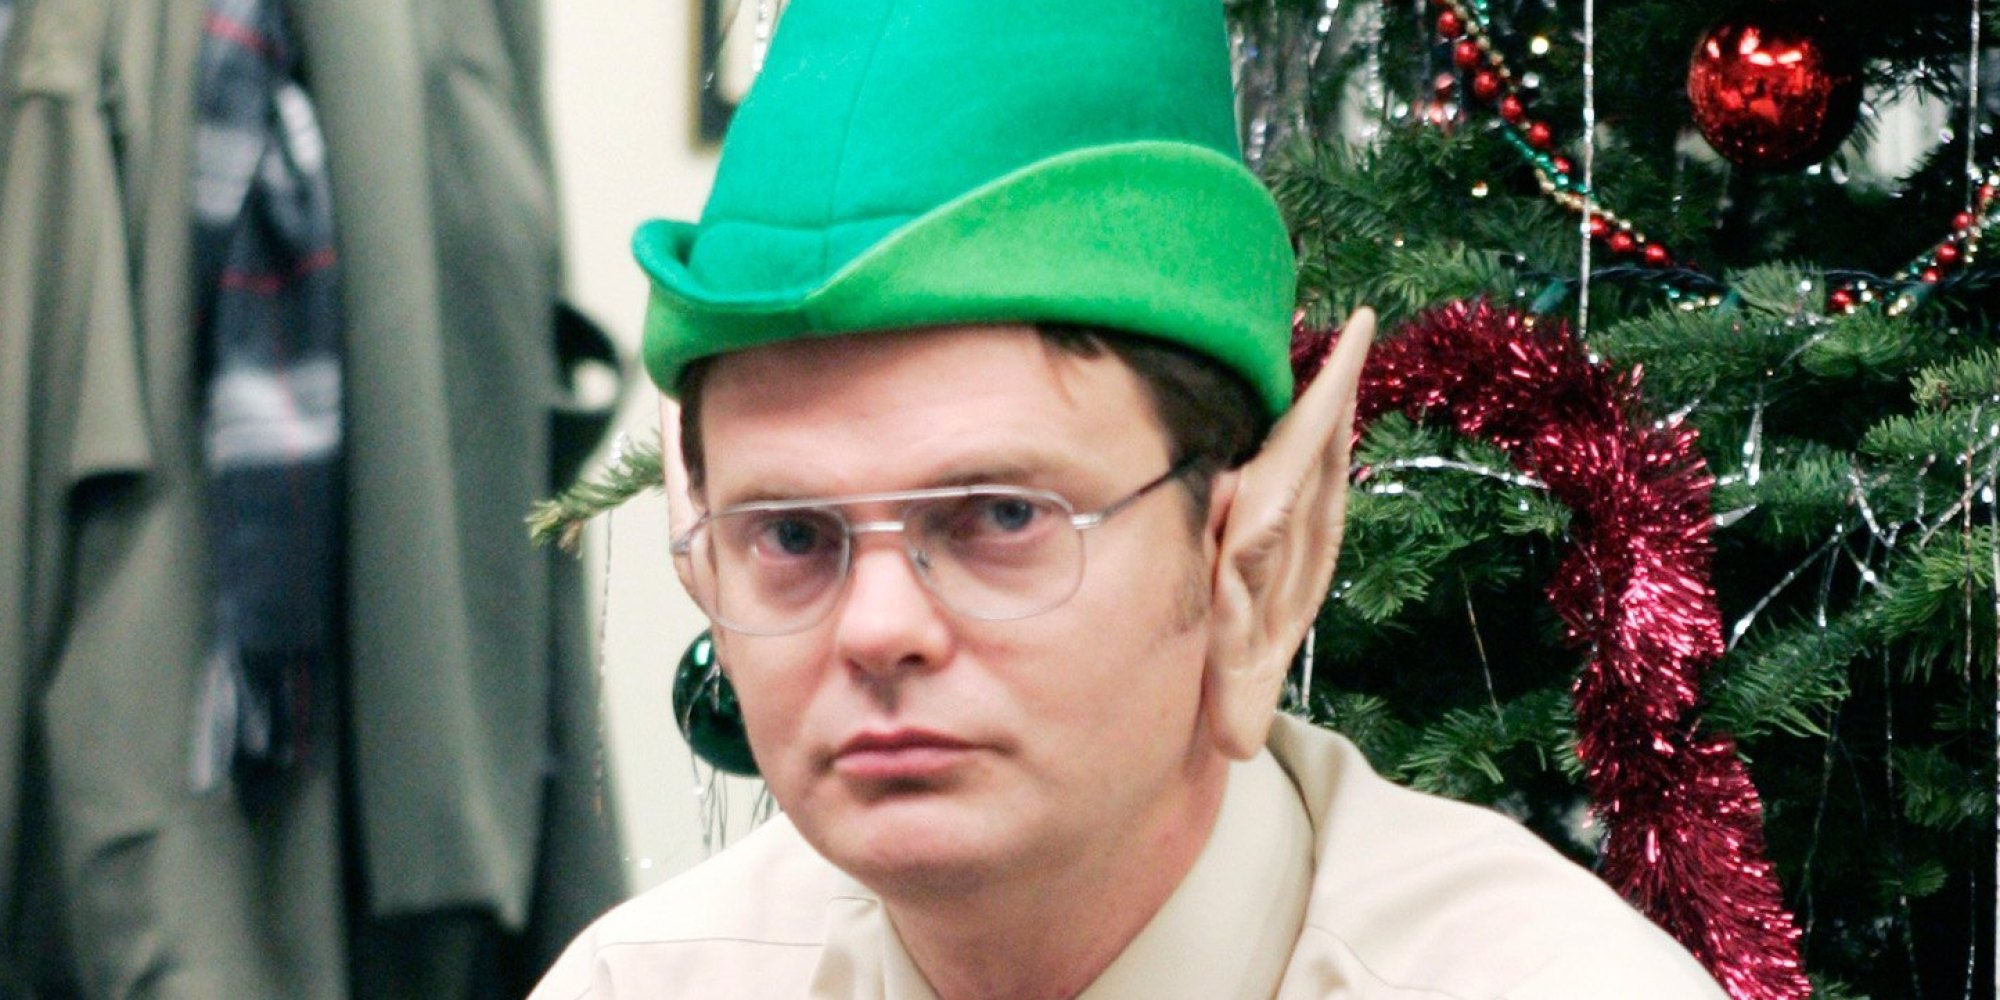 Christmas Time As Told By The Office